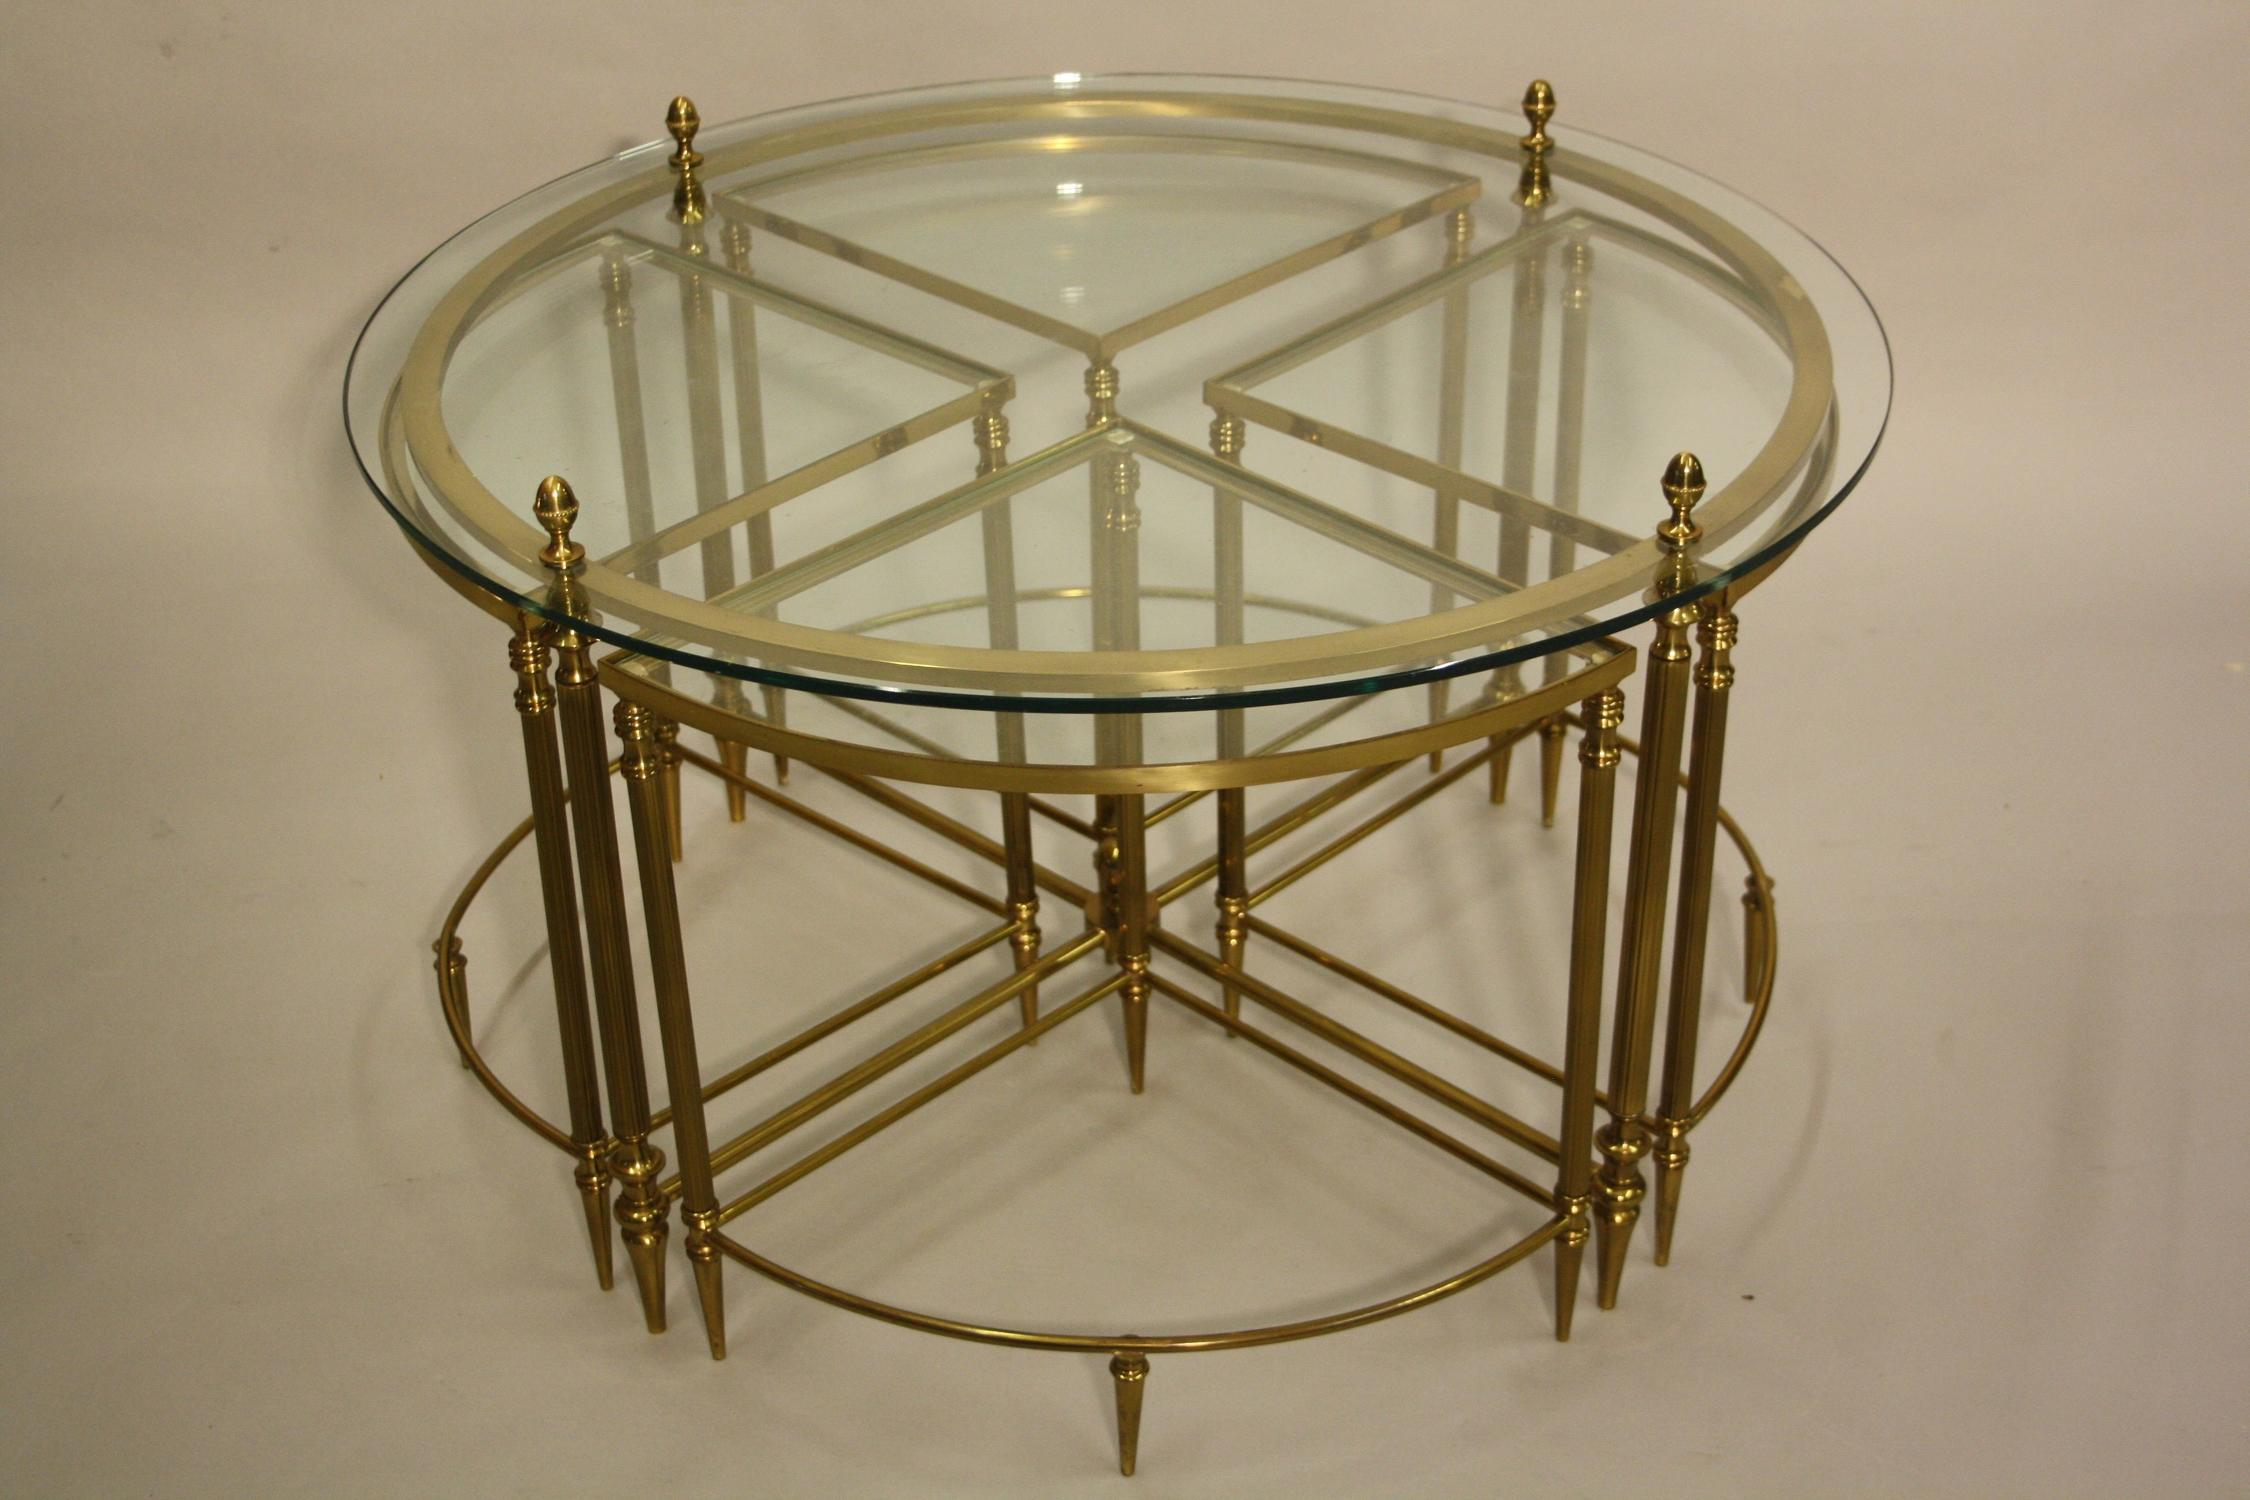 Circular nest of tables